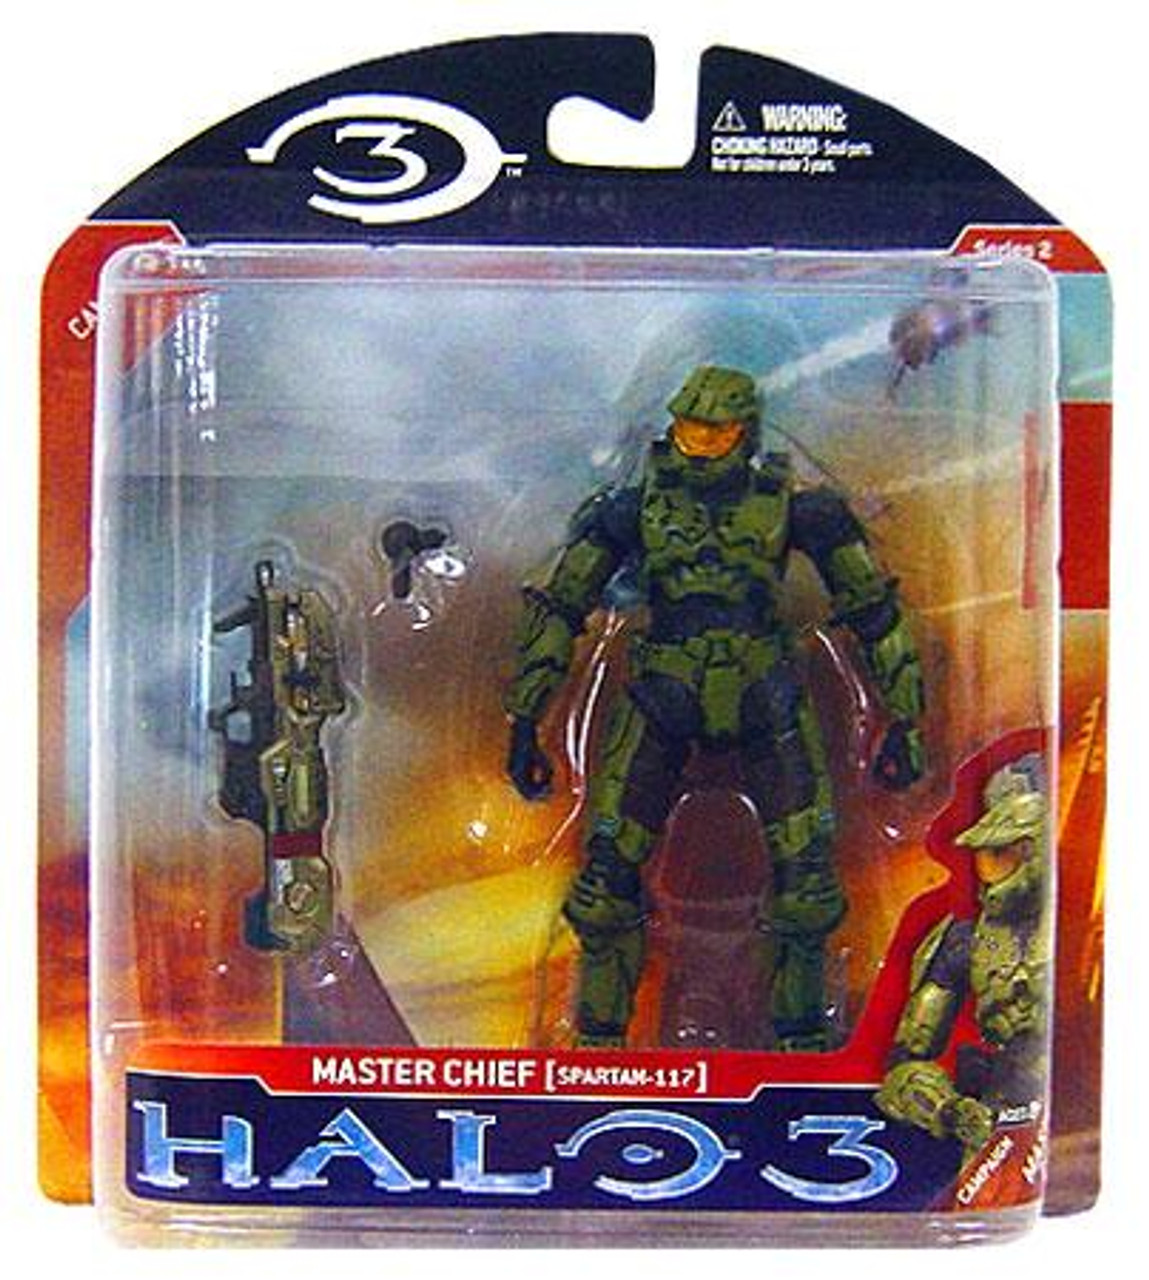 McFarlane Toys Halo 3 Series 2 Master Chief Spartan-117 Action Figure